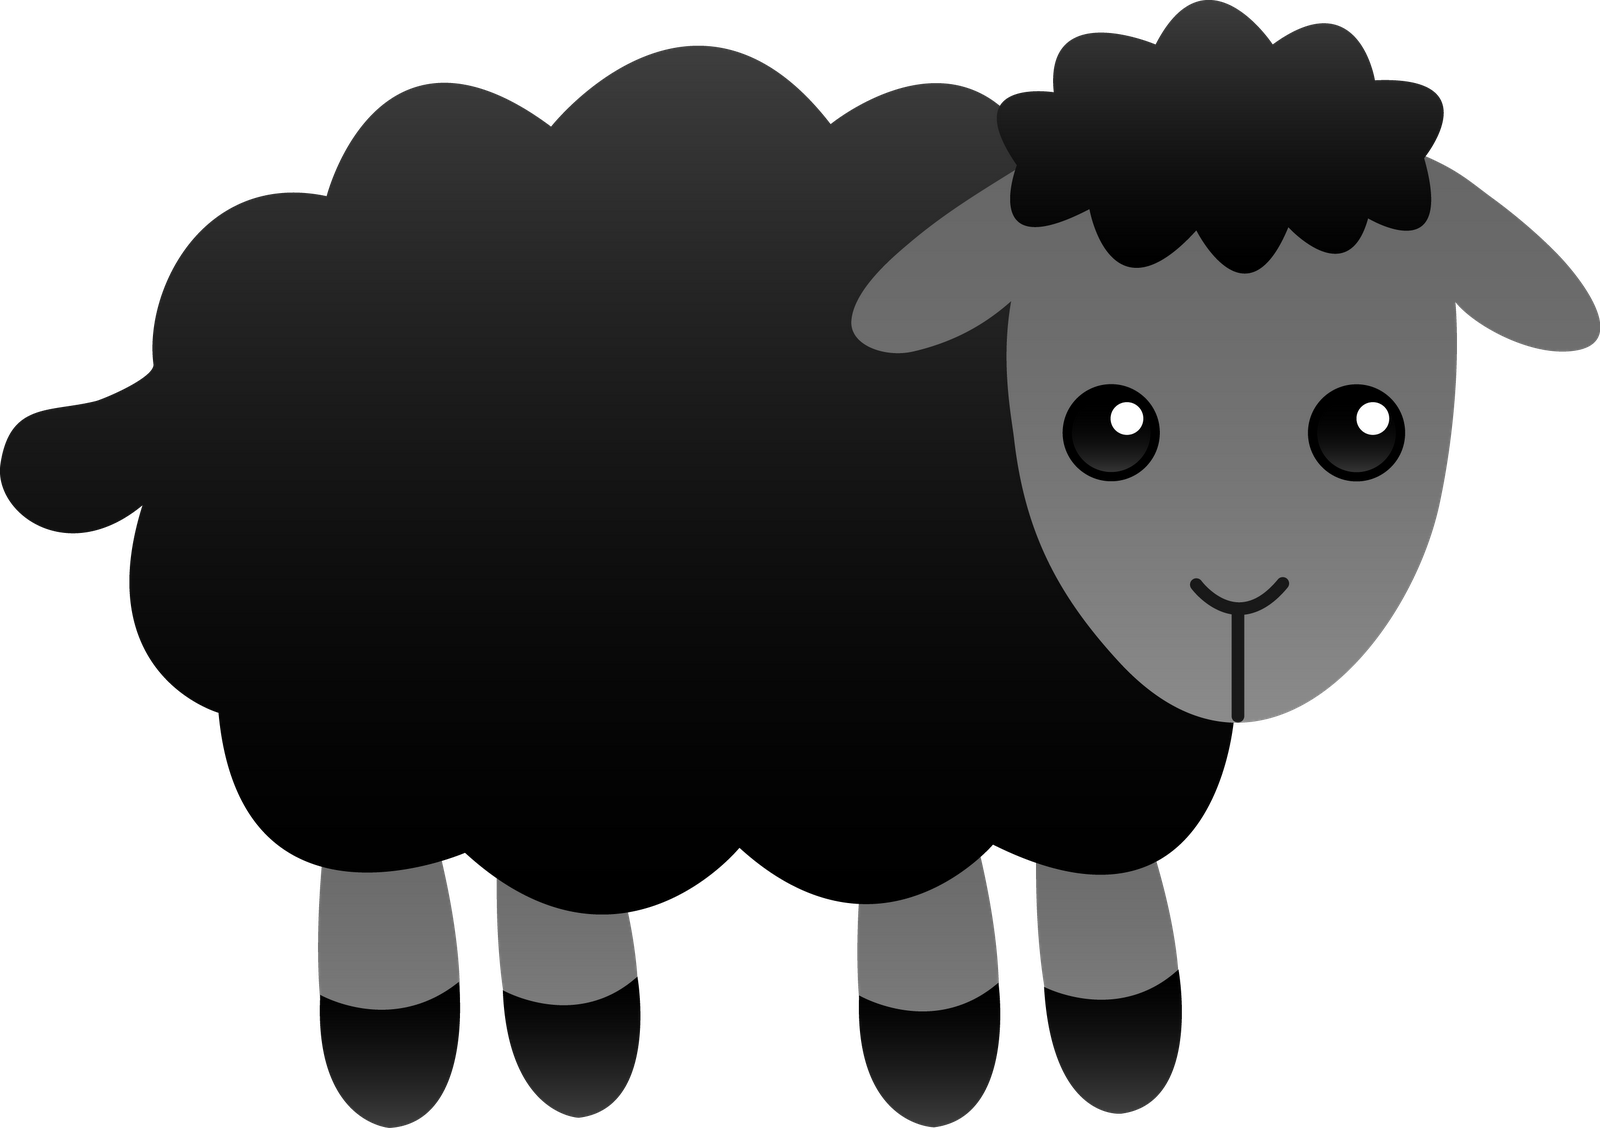 Home clipart sheep. This is definitely me